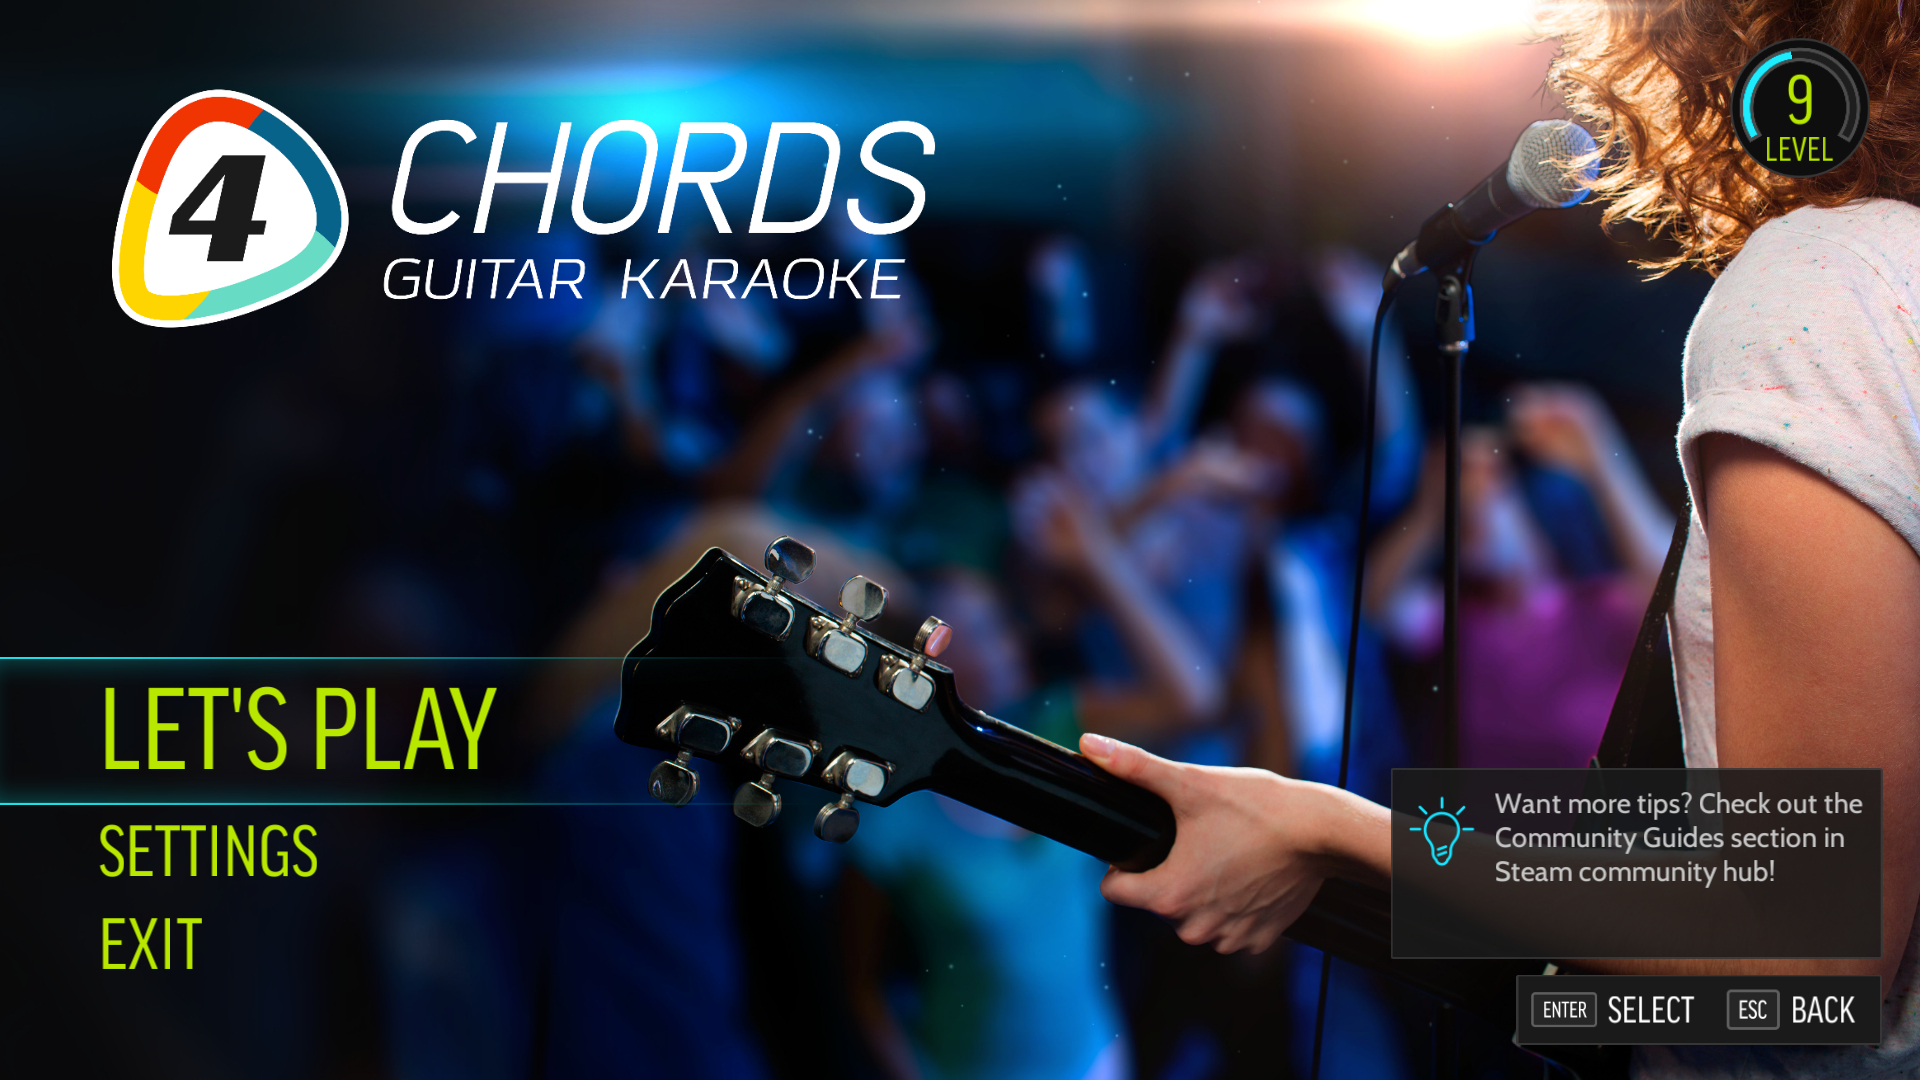 Fourchords Guitar Karaoke Keith Urban Song Pack On Steam